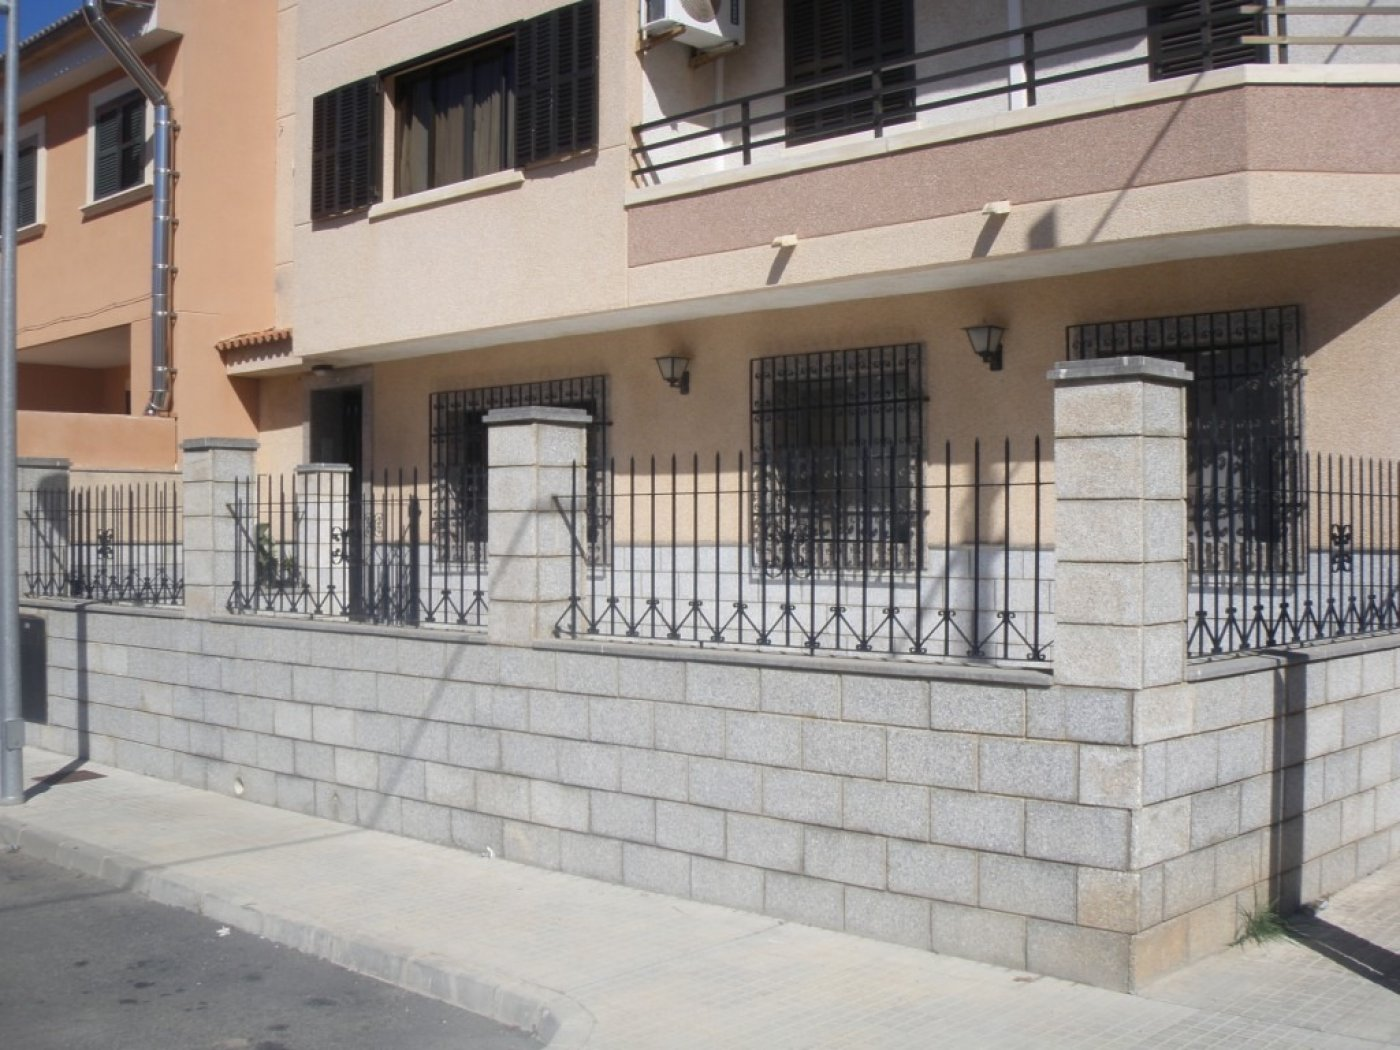 Location Appartement  Marratxí ,pont d\'inca. Planta baja en marratxí zona es pont d inca, 140 m2